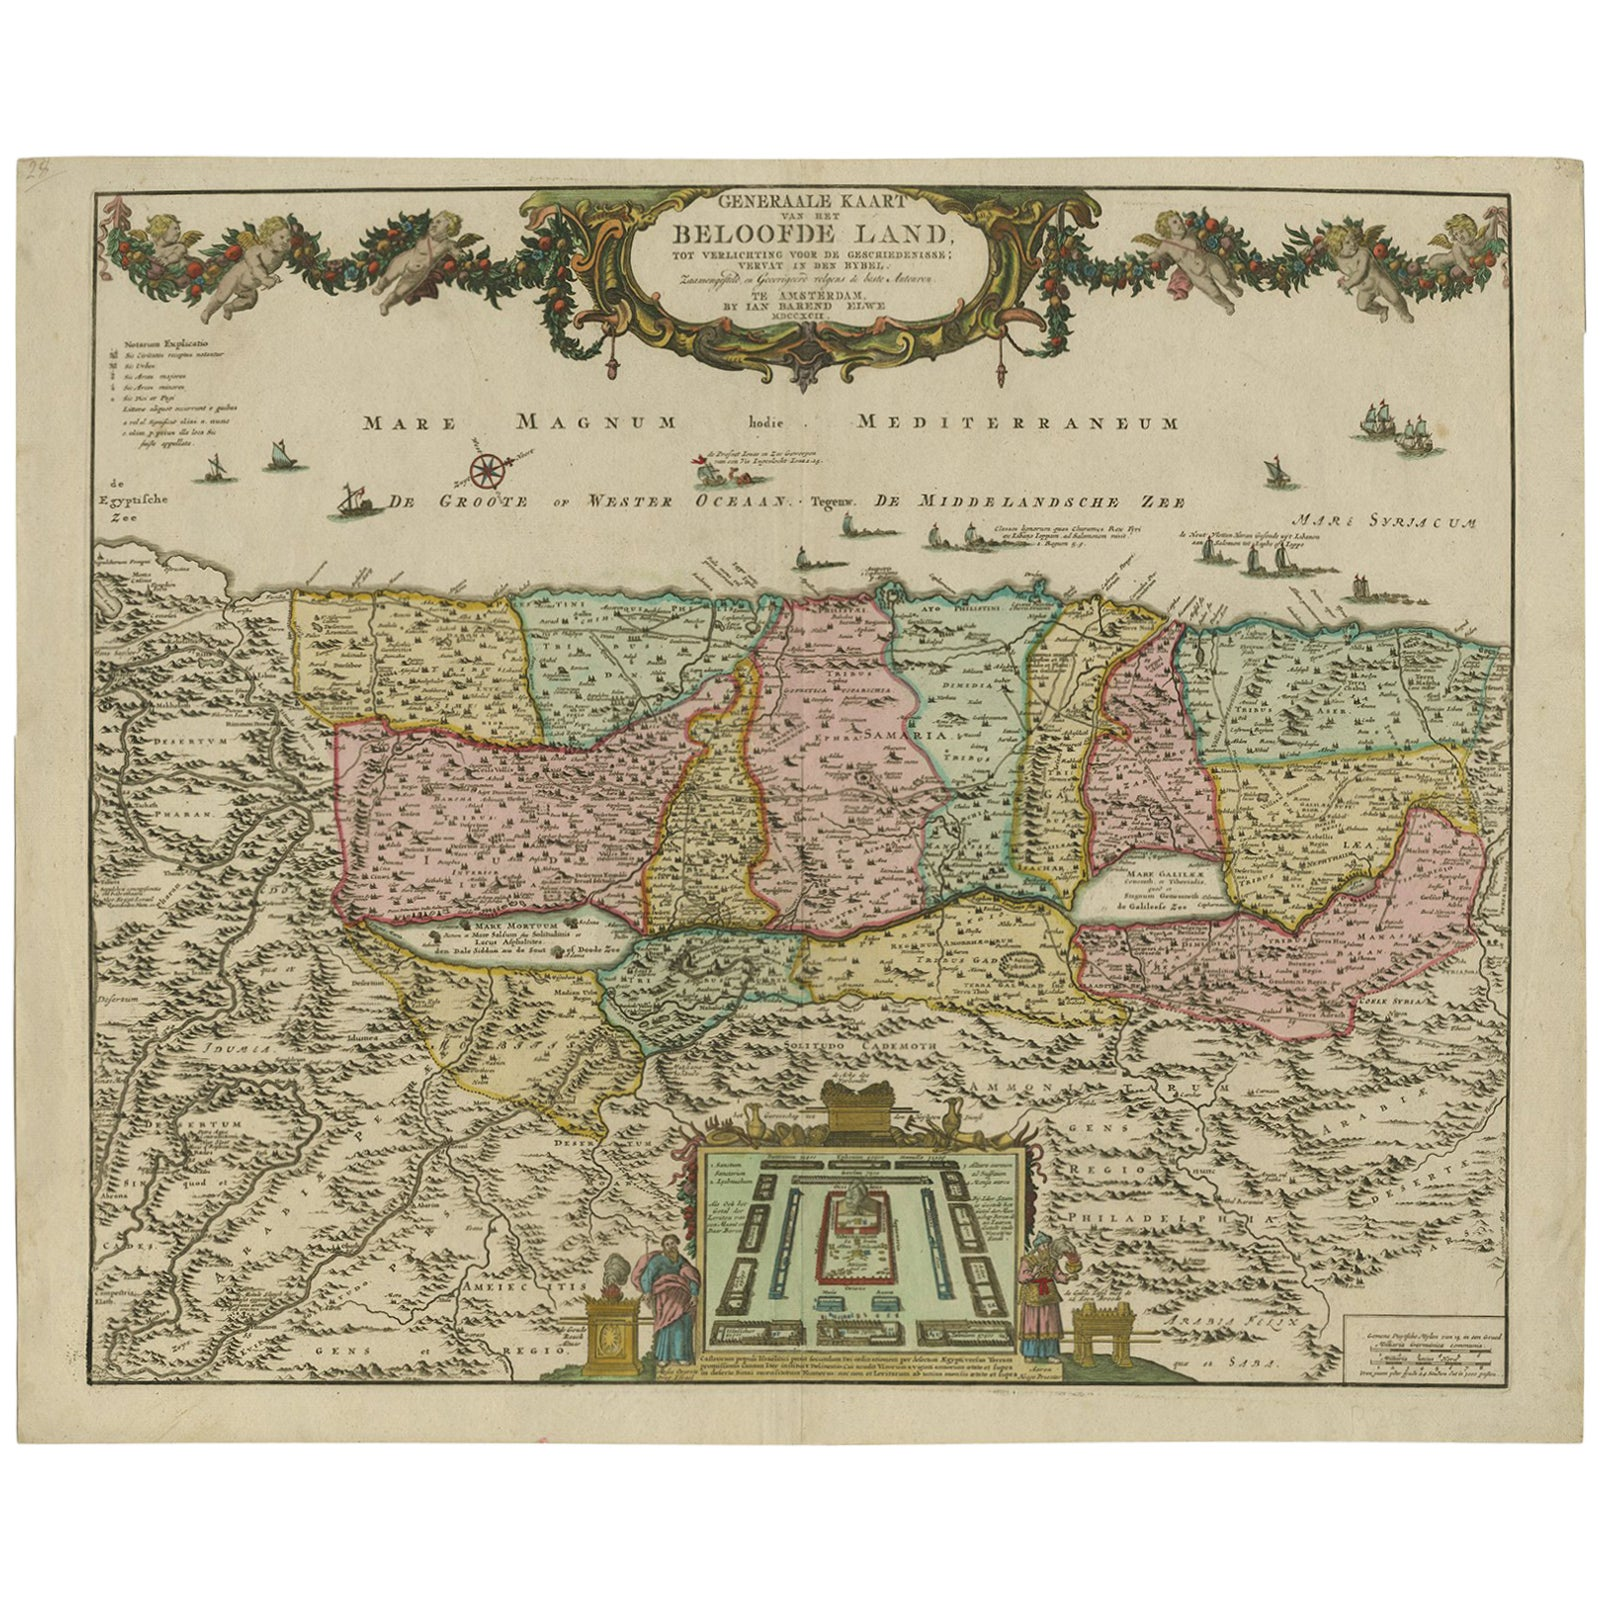 Antique Map of the Holy Land, Israel by J.B. Elwe, 1792